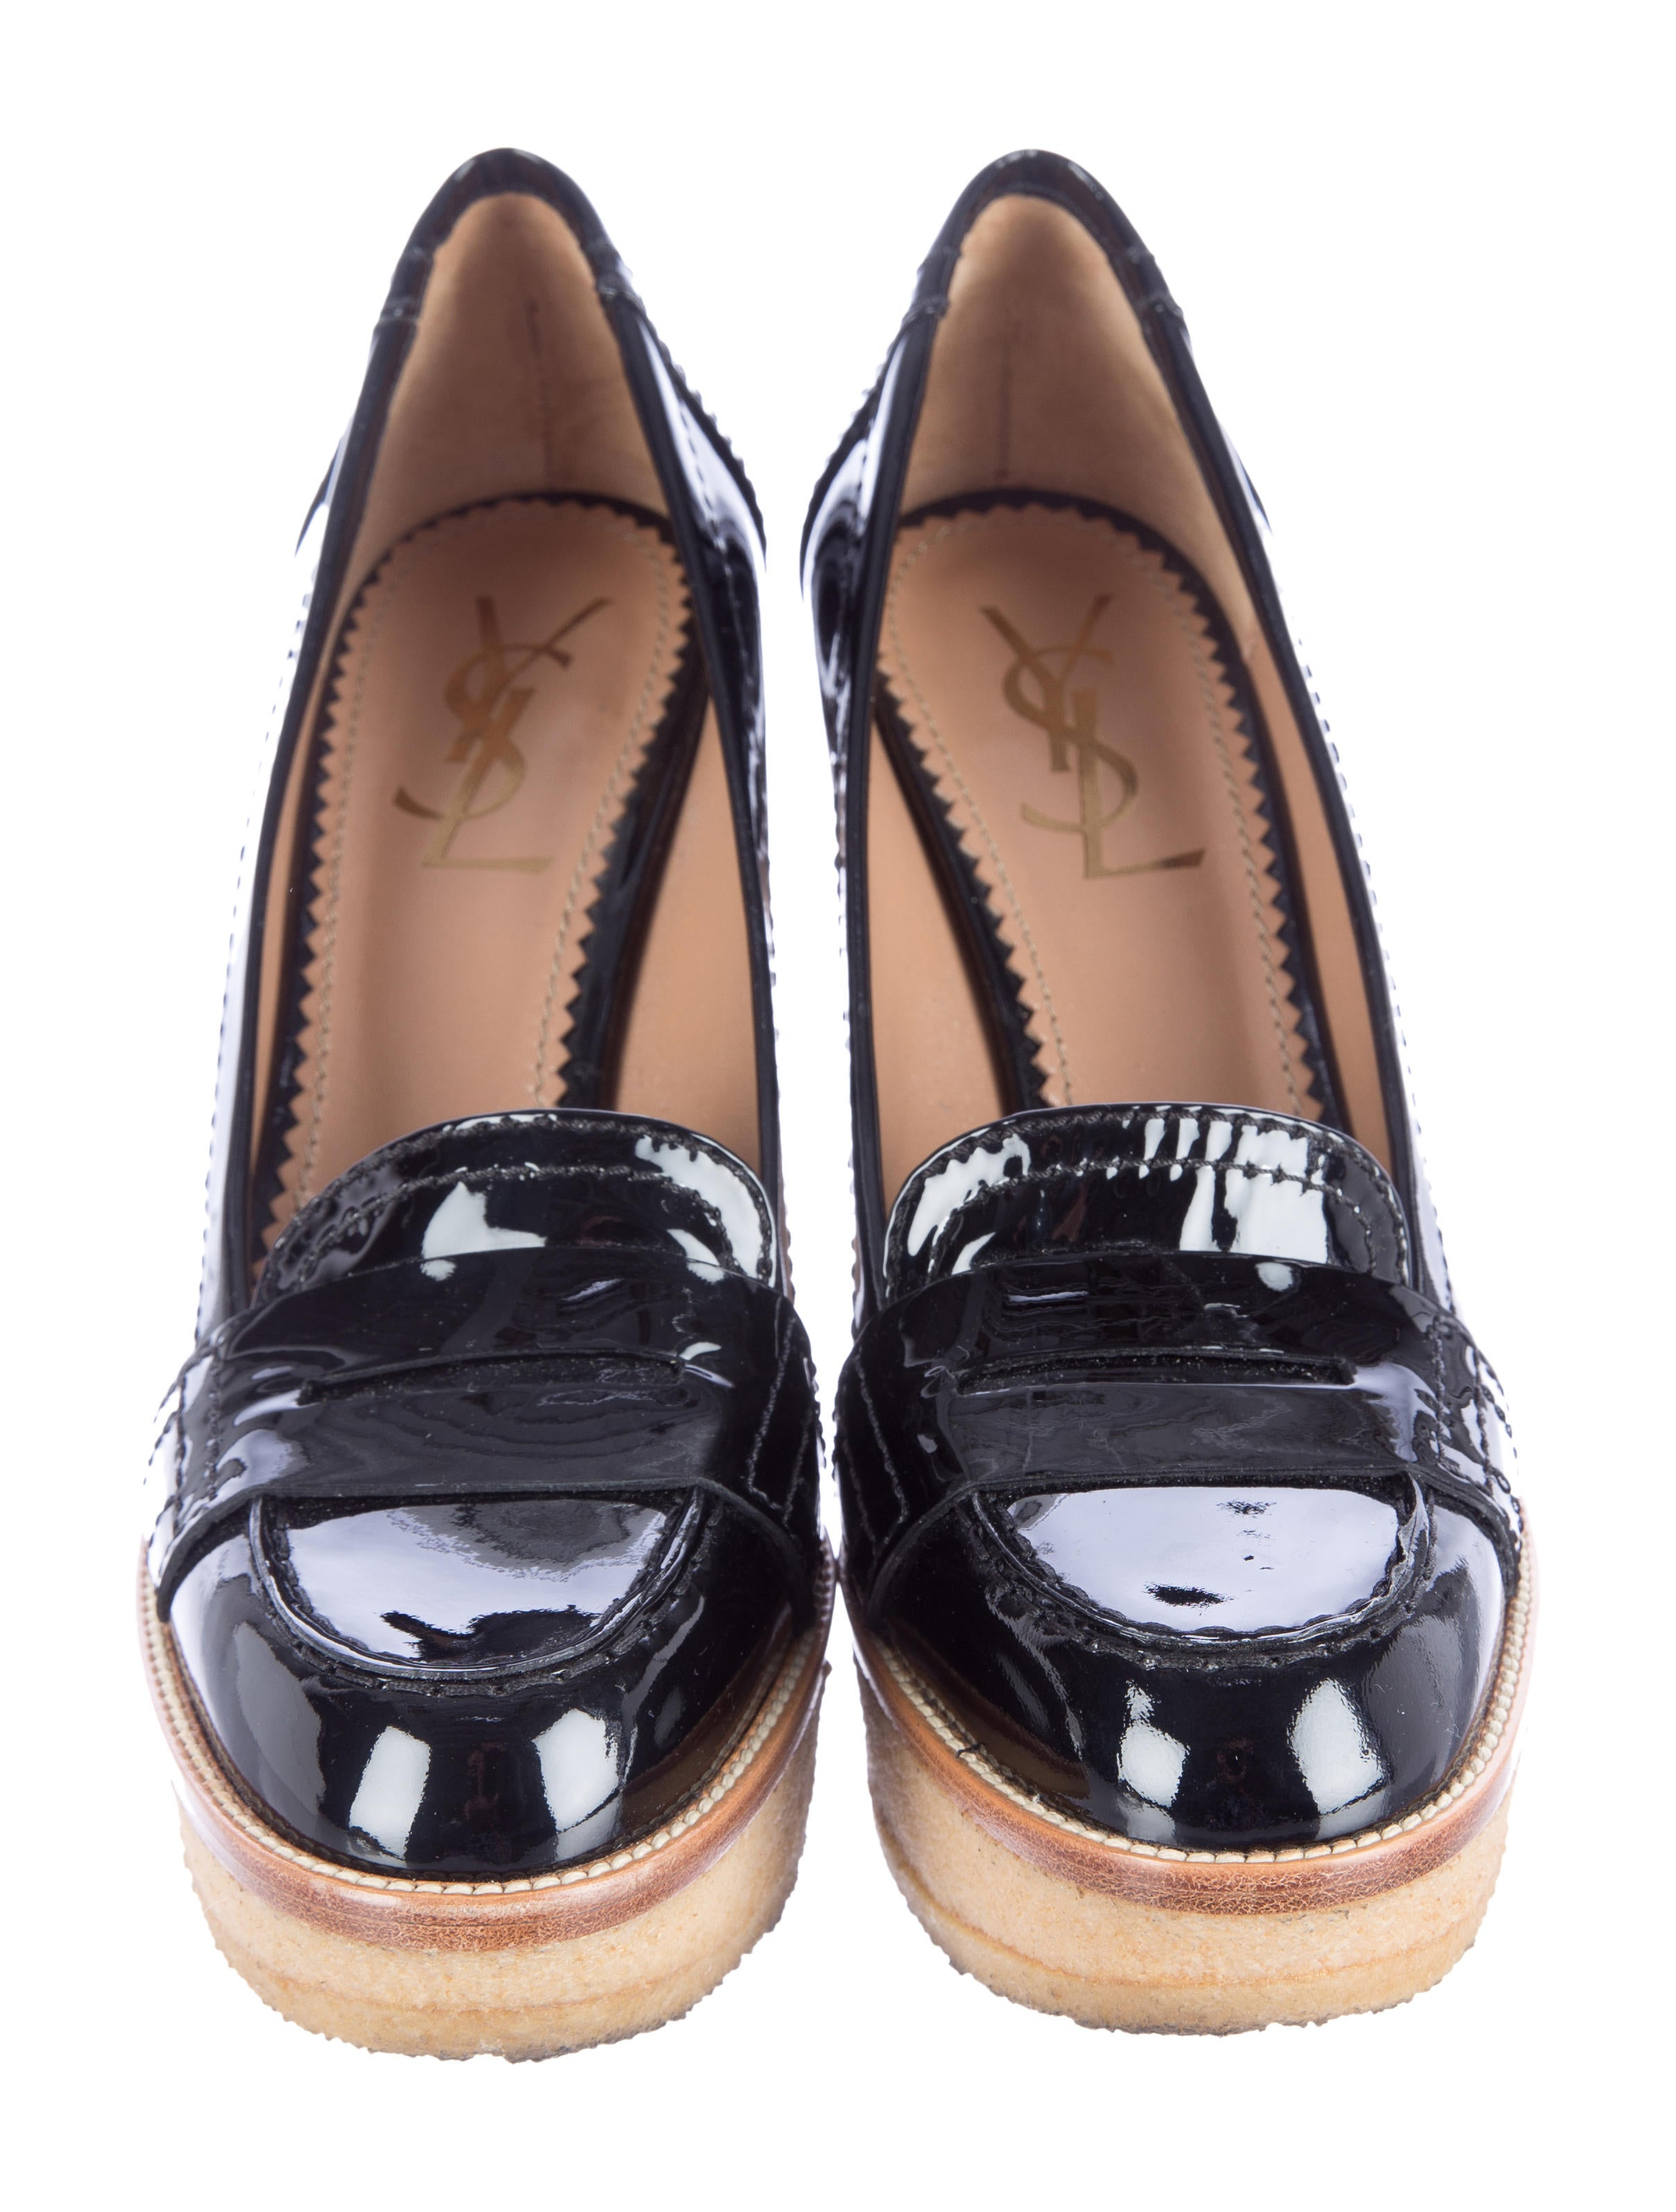 yves laurent loafer wedges shoes yve45429 the